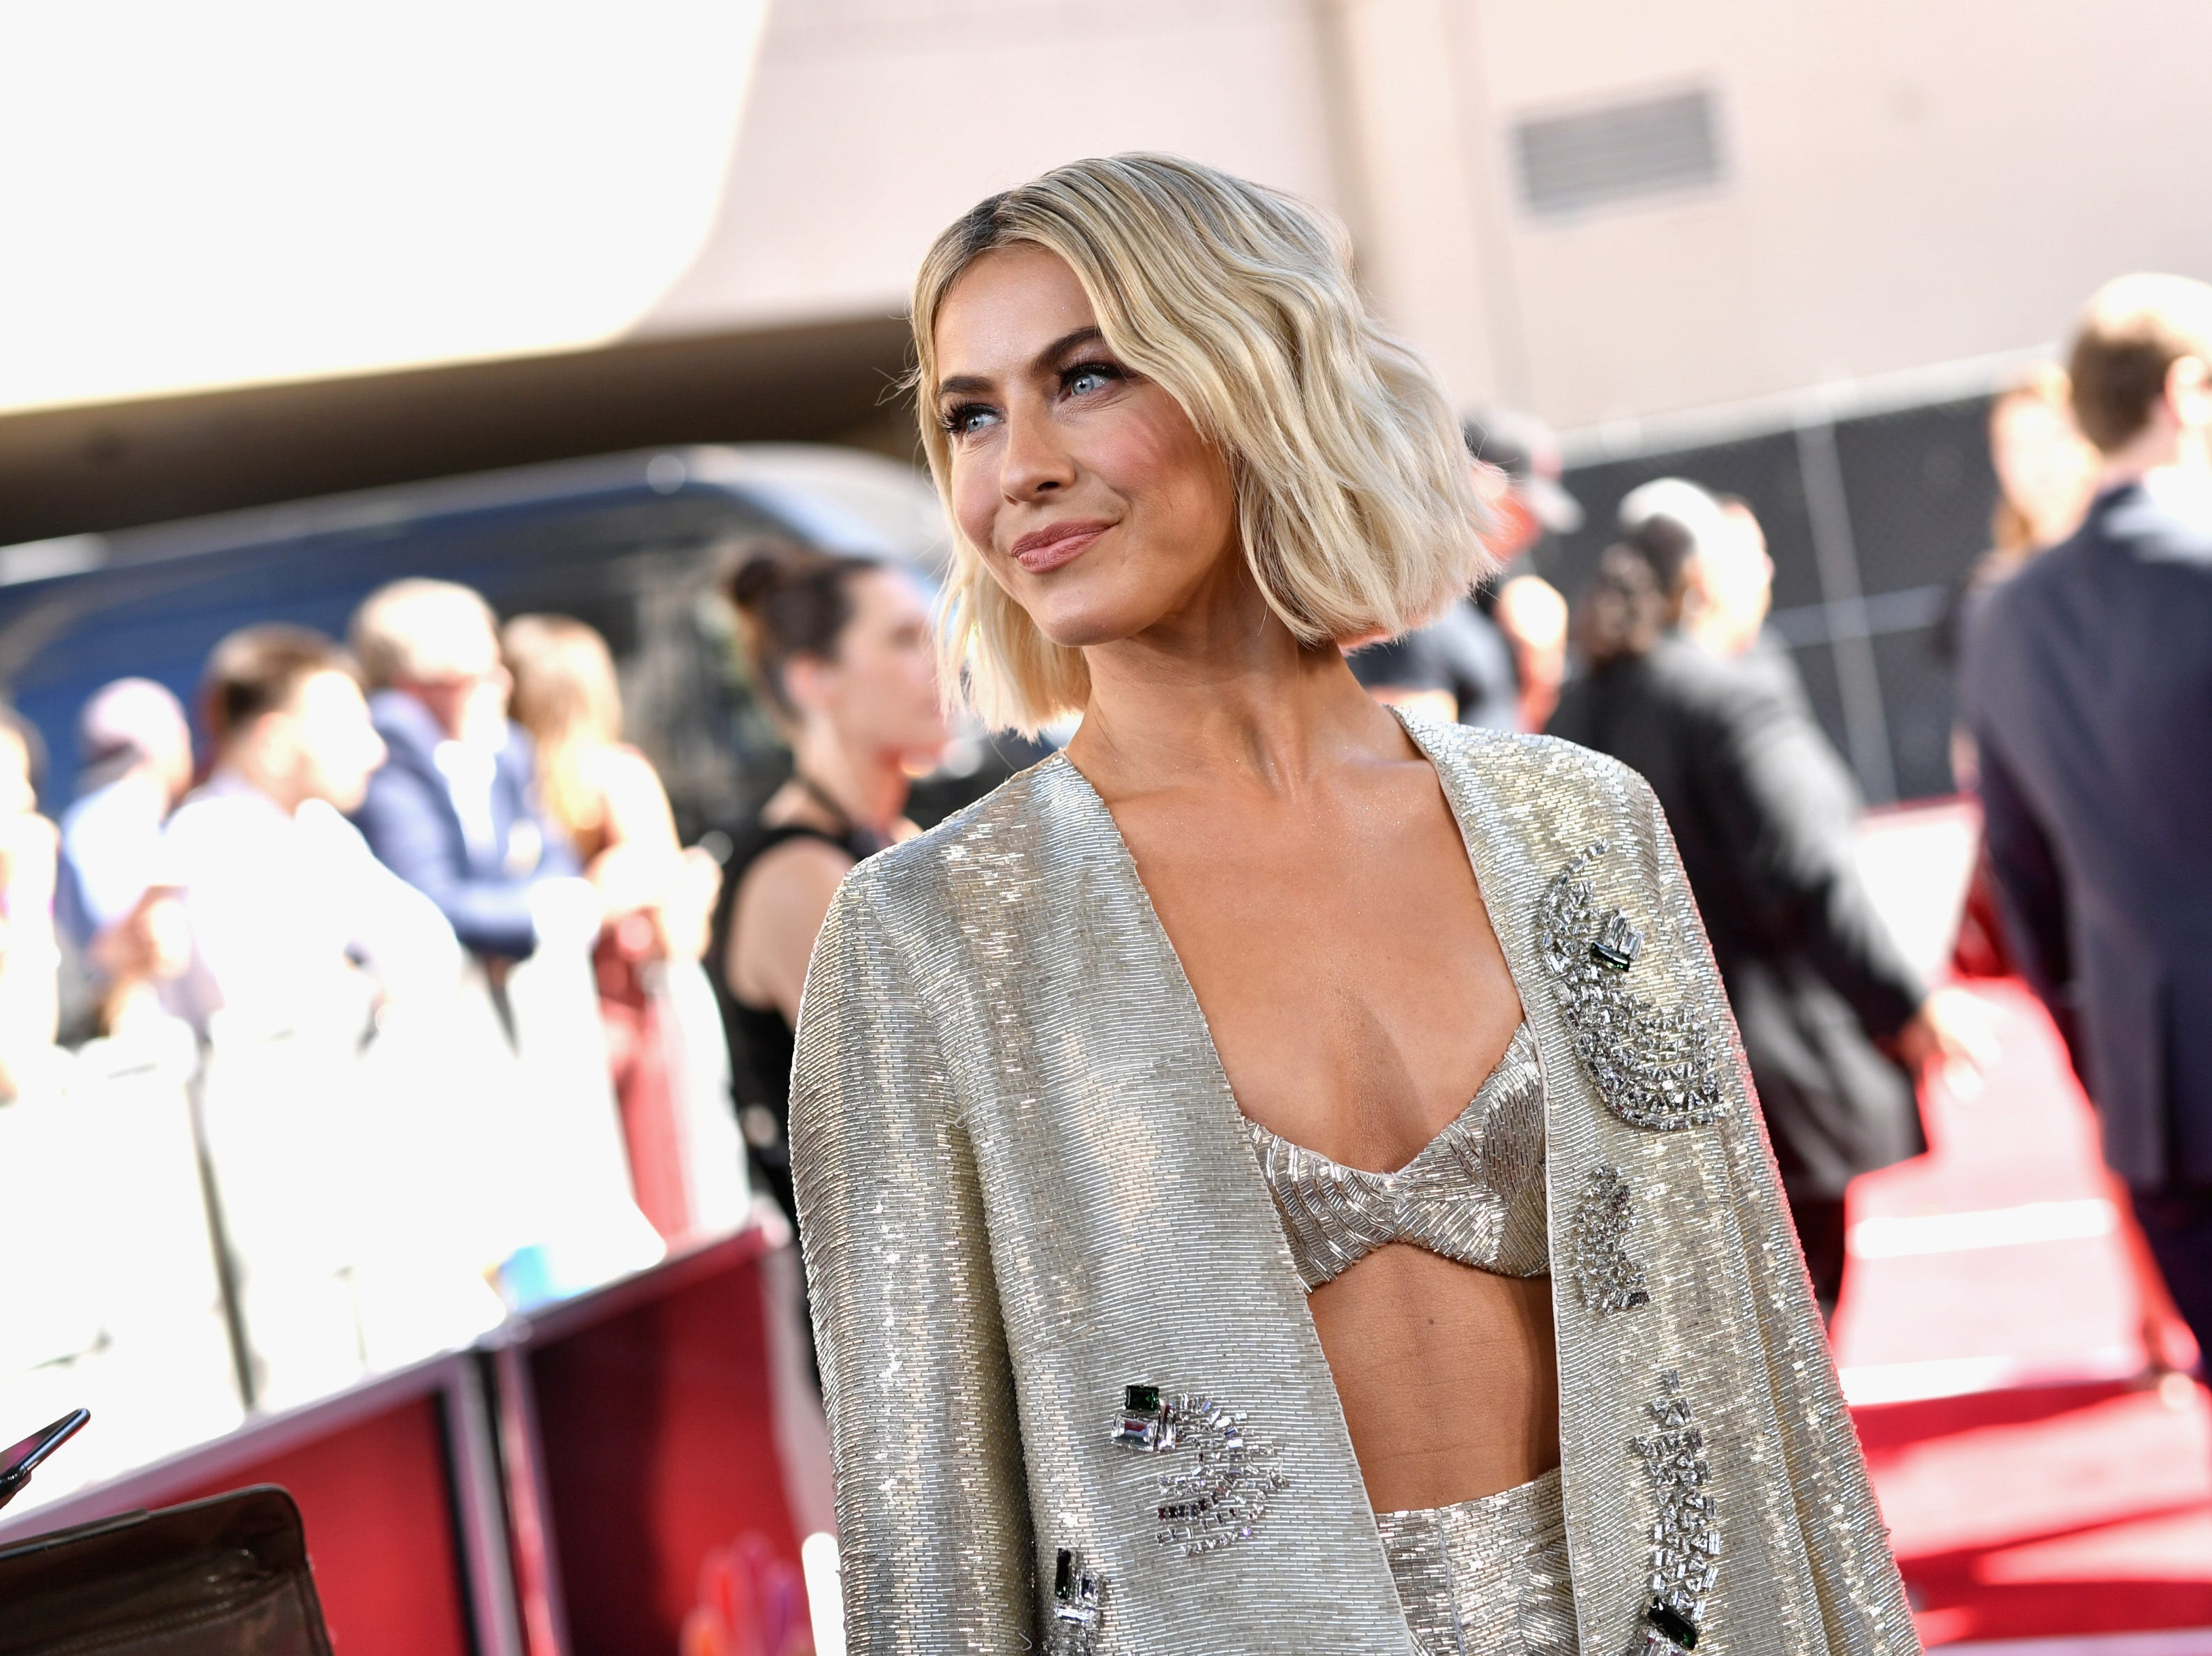 Julianne Hough attends the 2019 Billboard Music Awards at MGM Grand Garden Arena on May 1, 2019 in Las Vegas, Nevada.